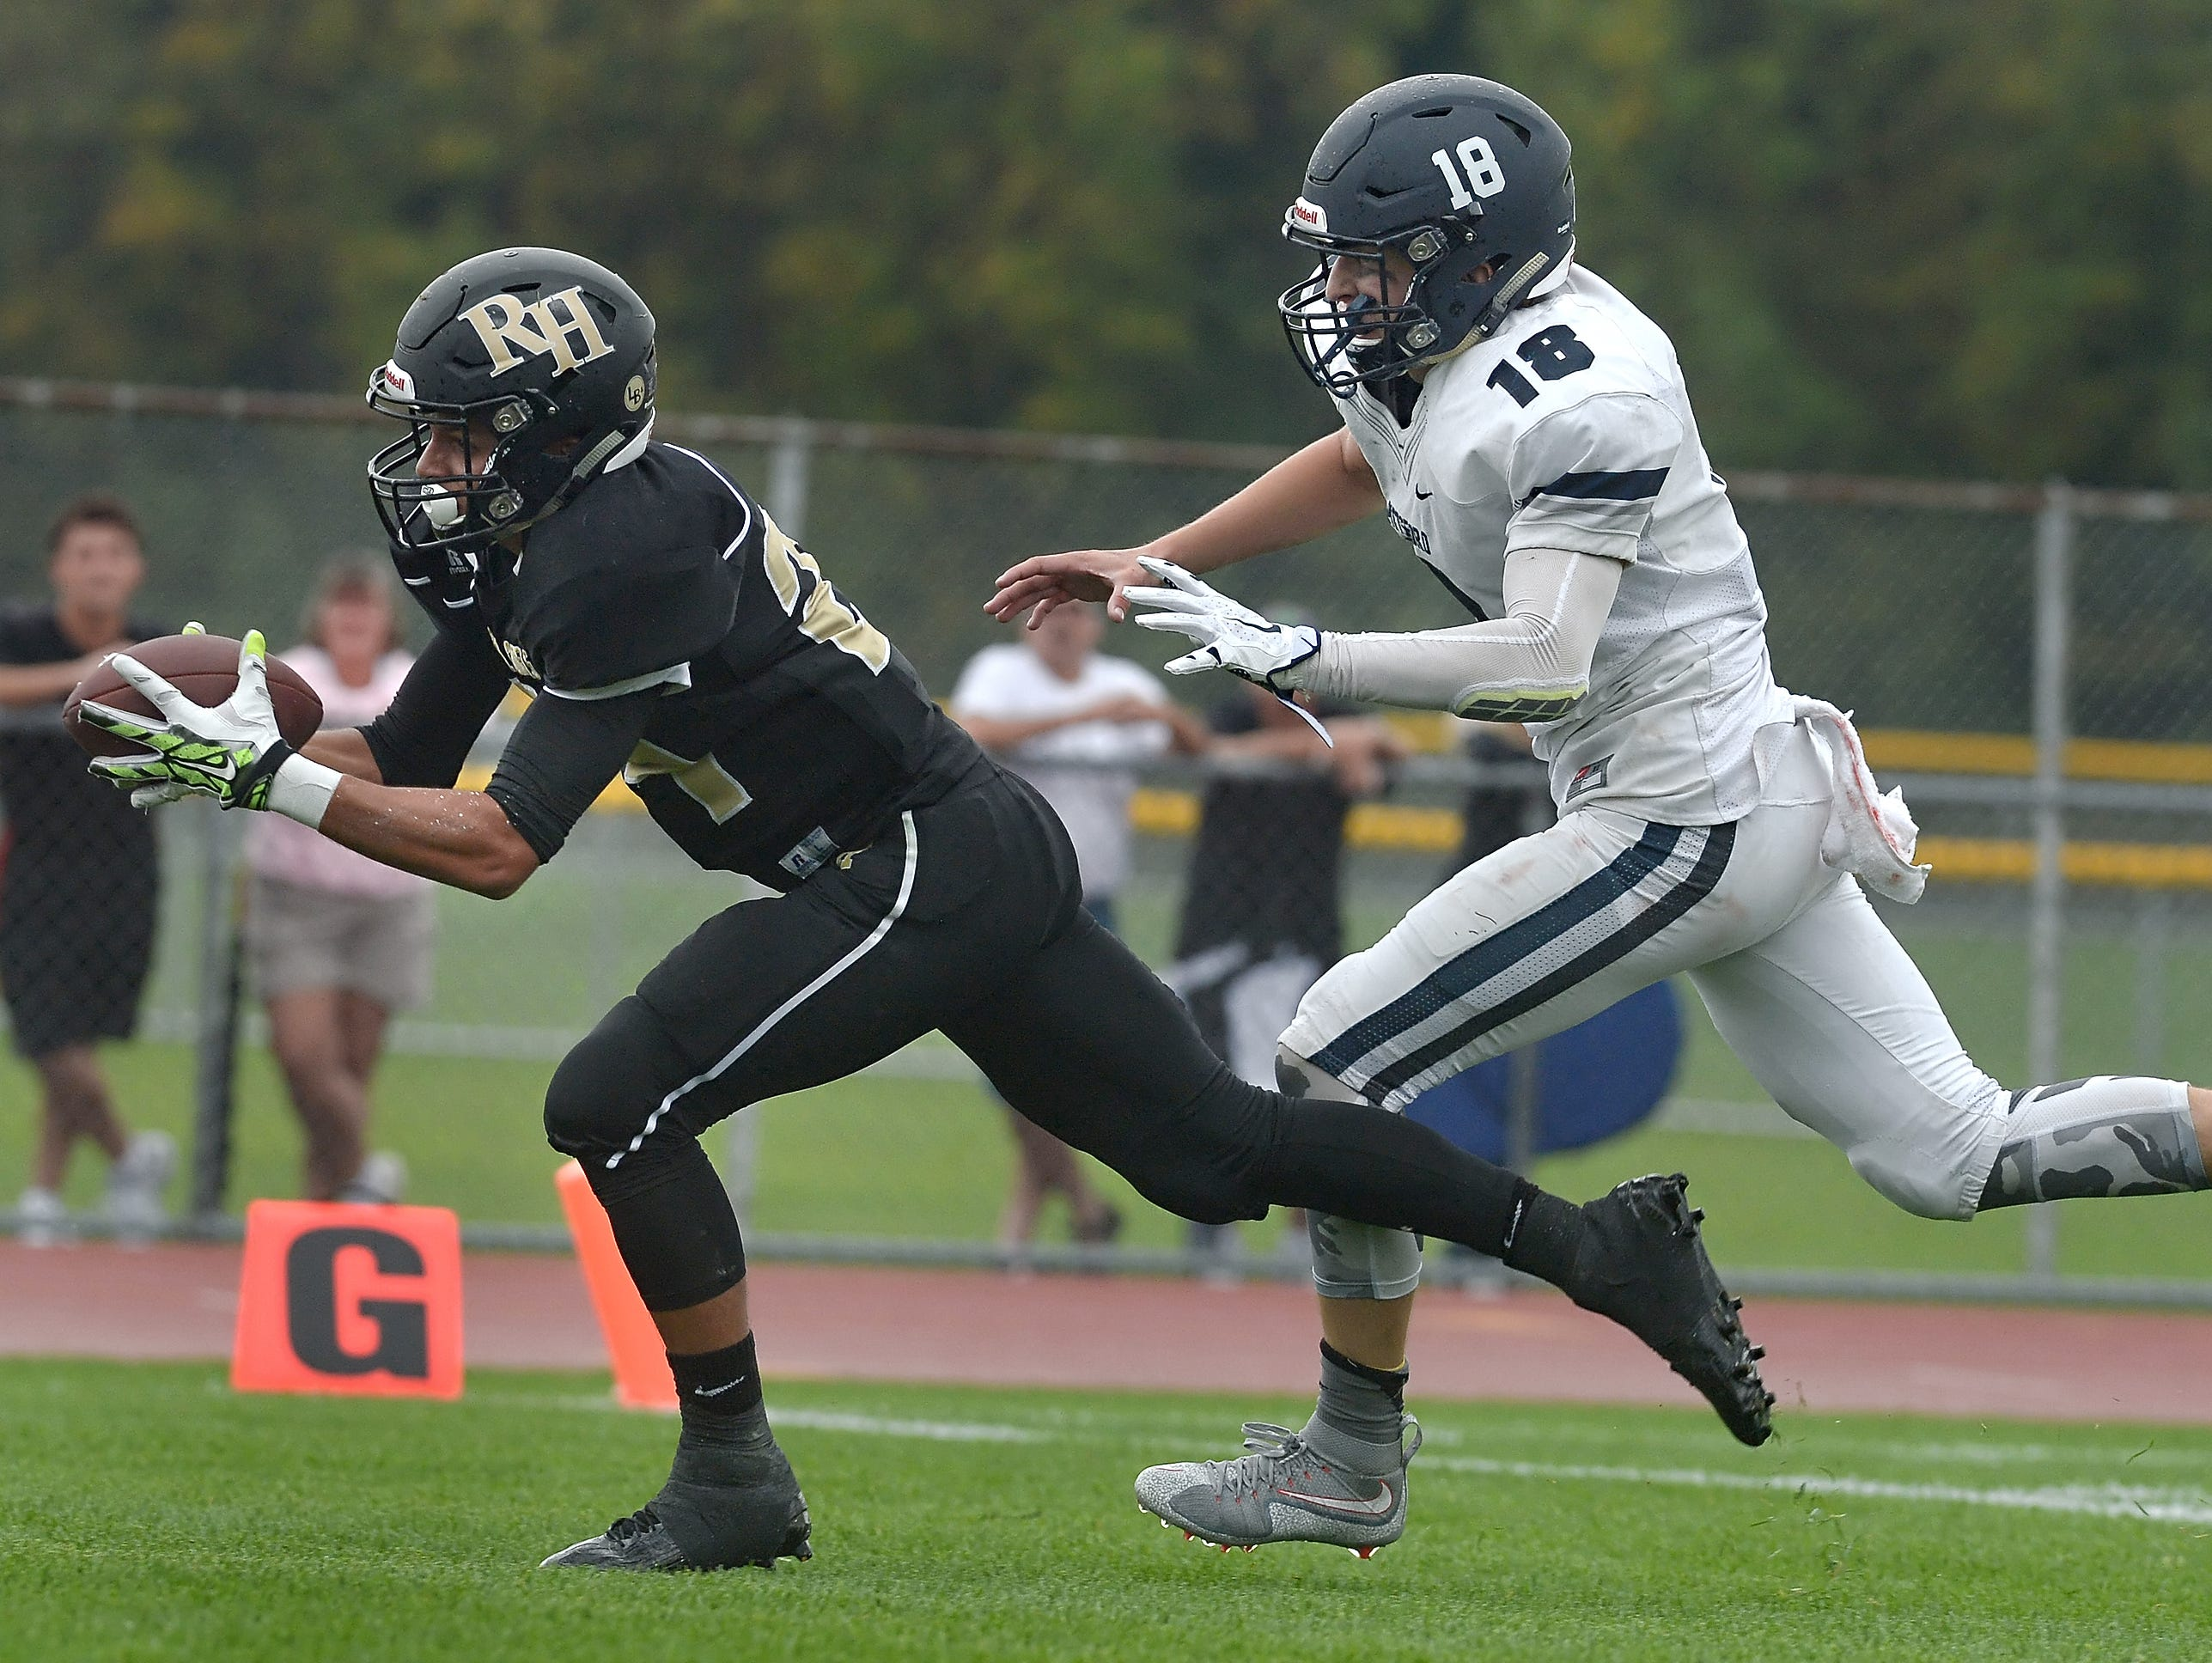 Pittsford's Colby Barker, shown here on the right defending Rush-Henrietta receiver Joseph Ortiz earlier this season, returned an interception 72 yards for a touchdown last week.